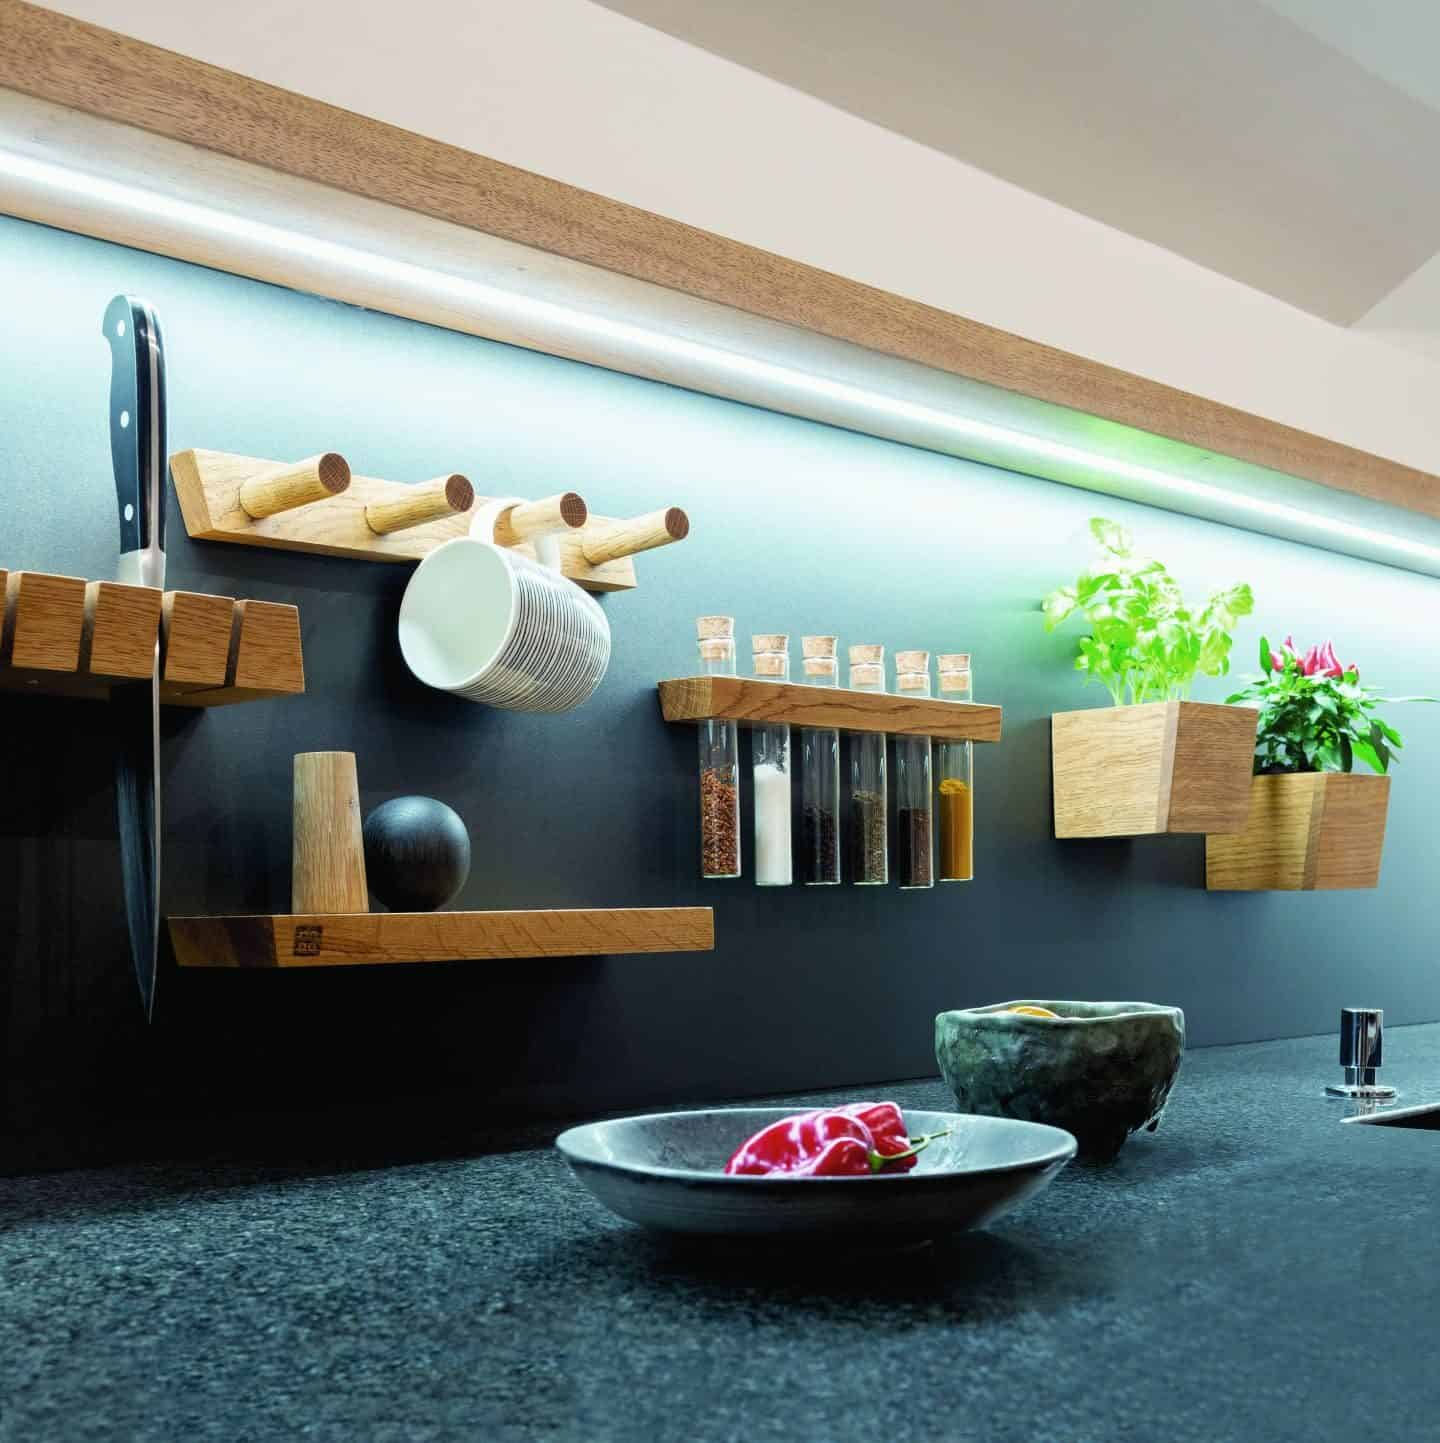 Steelline magnet is a Magnetic Storage System by 3s design. Wooden storage units attached by magnets to a kitchen splash back. Photo By Doris Kodric